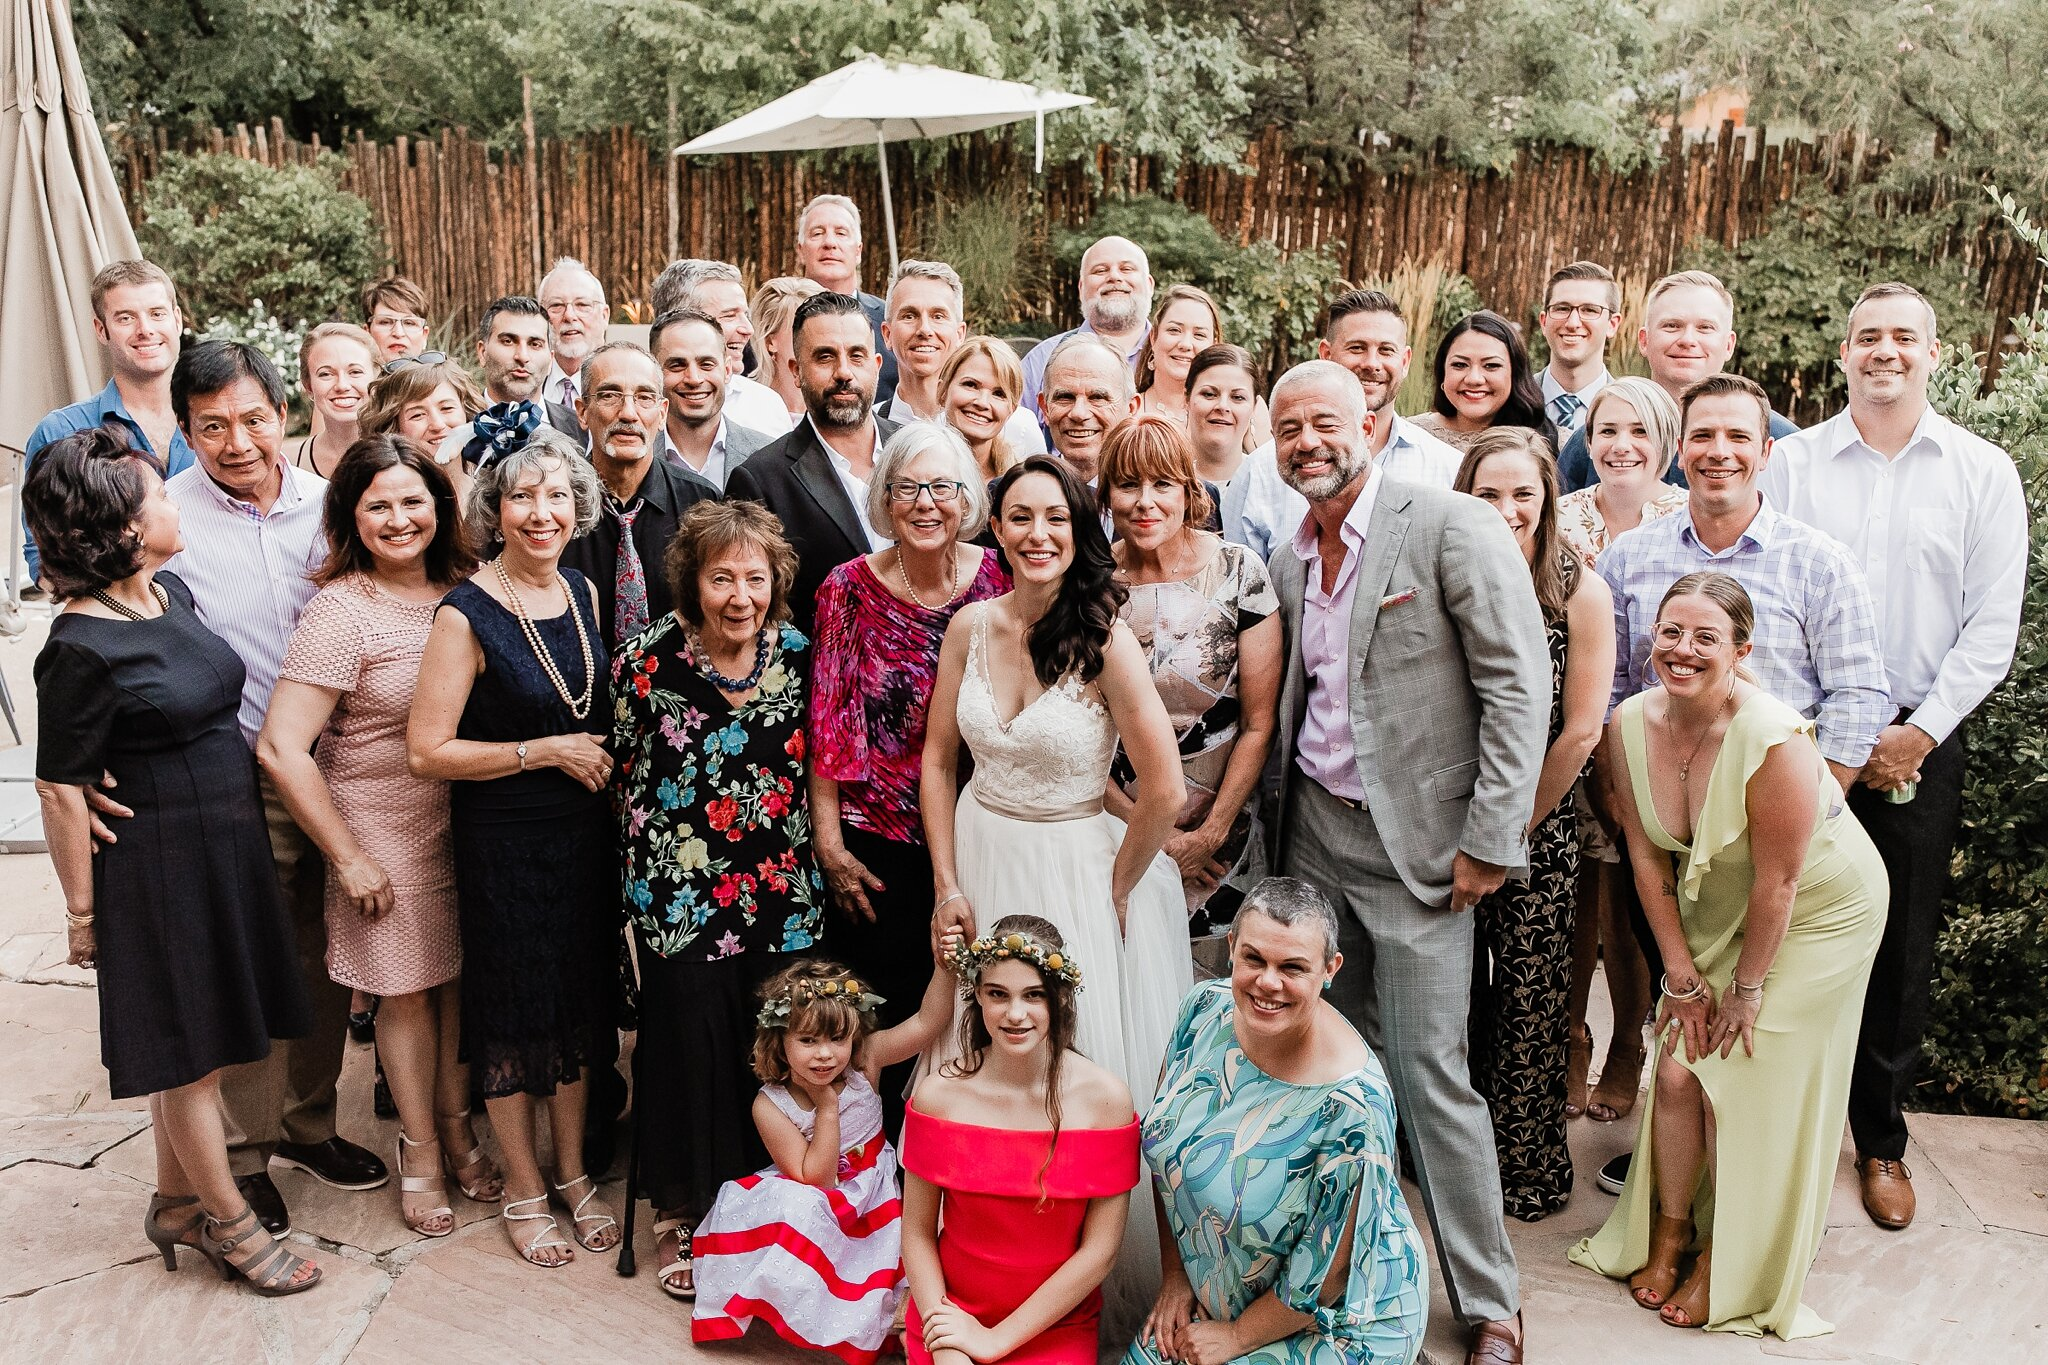 Alicia+lucia+photography+-+albuquerque+wedding+photographer+-+santa+fe+wedding+photography+-+new+mexico+wedding+photographer+-+new+mexico+wedding+-+bed+and+breakfast+wedding+-+sarabande+wedding+-+sarabande+bed+and+breakfast+wedding_0103.jpg